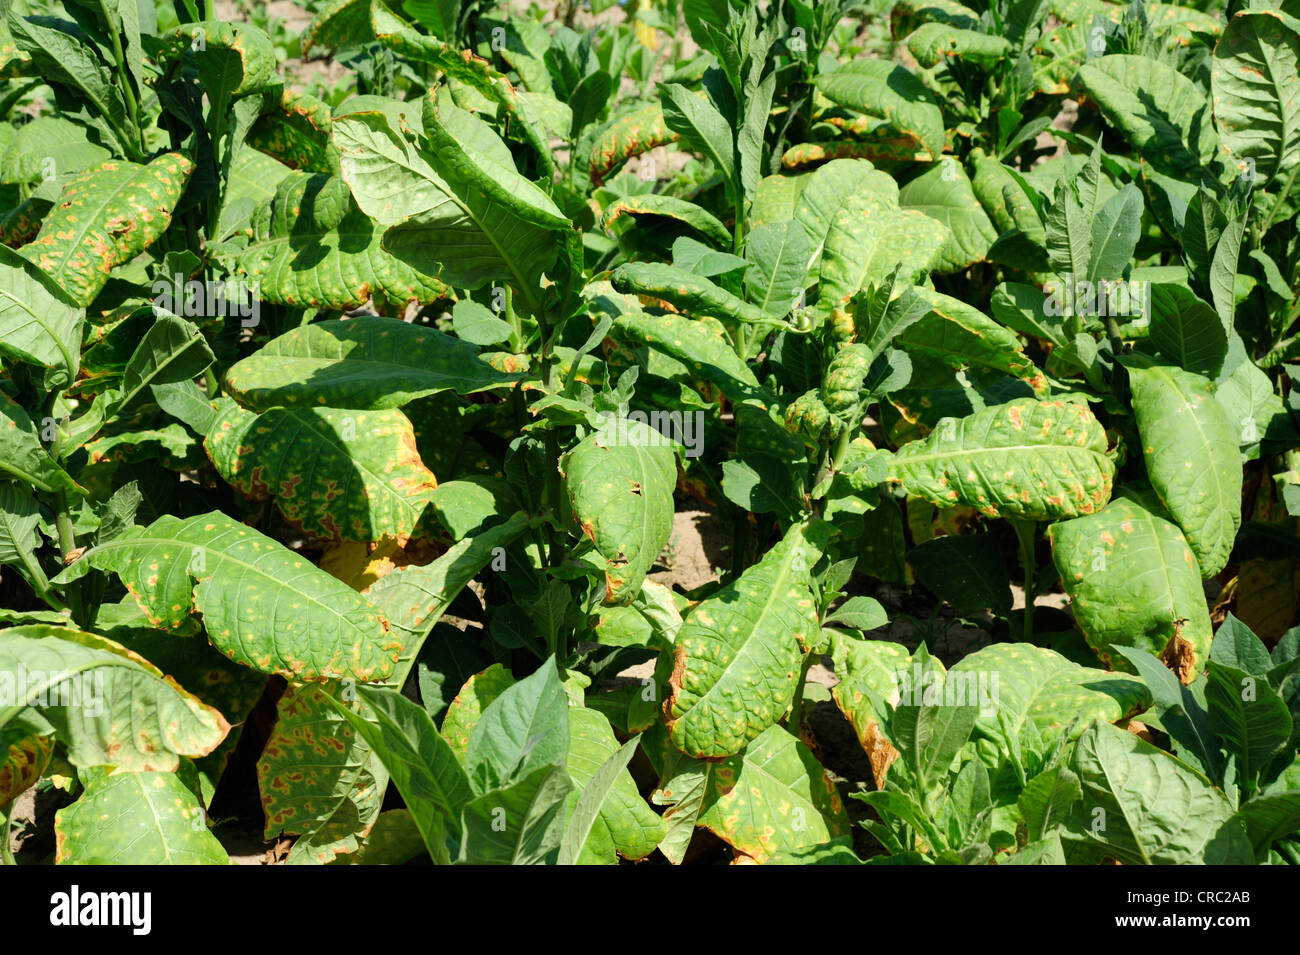 Tobacco leaves, tobacco plants (Nicotiana), tobacco plantation,  province, Cuba, Greater Antilles, Caribbean, Central - Stock Image